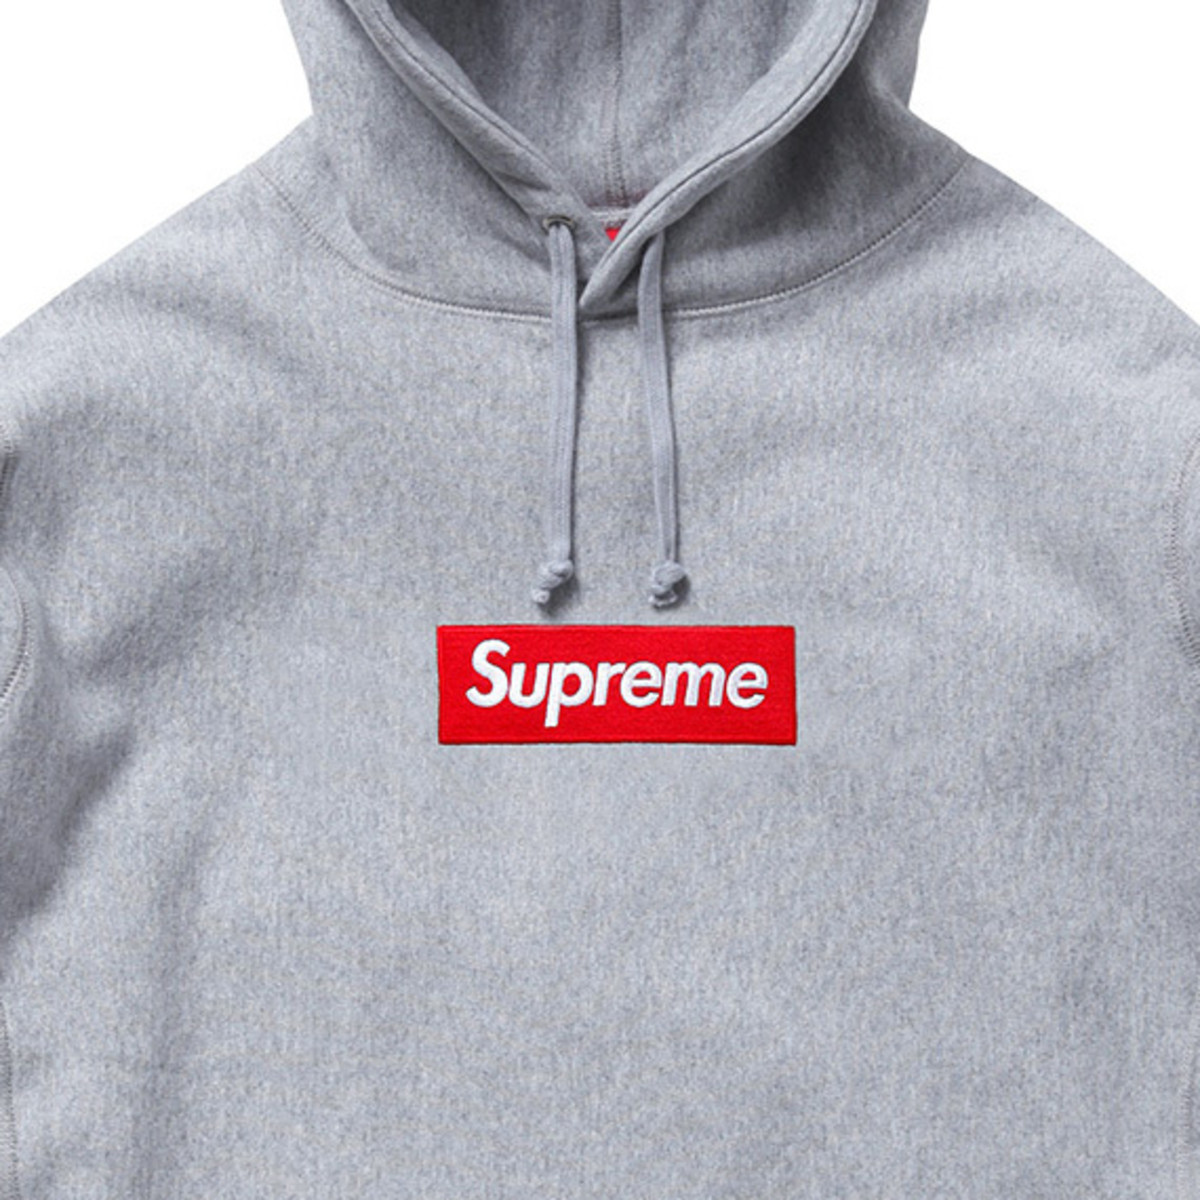 Introducing The Return Of Supreme S Iconic Box Logo Pullover Made From Heavyweight Cross Grain Cotton Fleece Featuring Rib Gussets And A Kangaroo Pouch